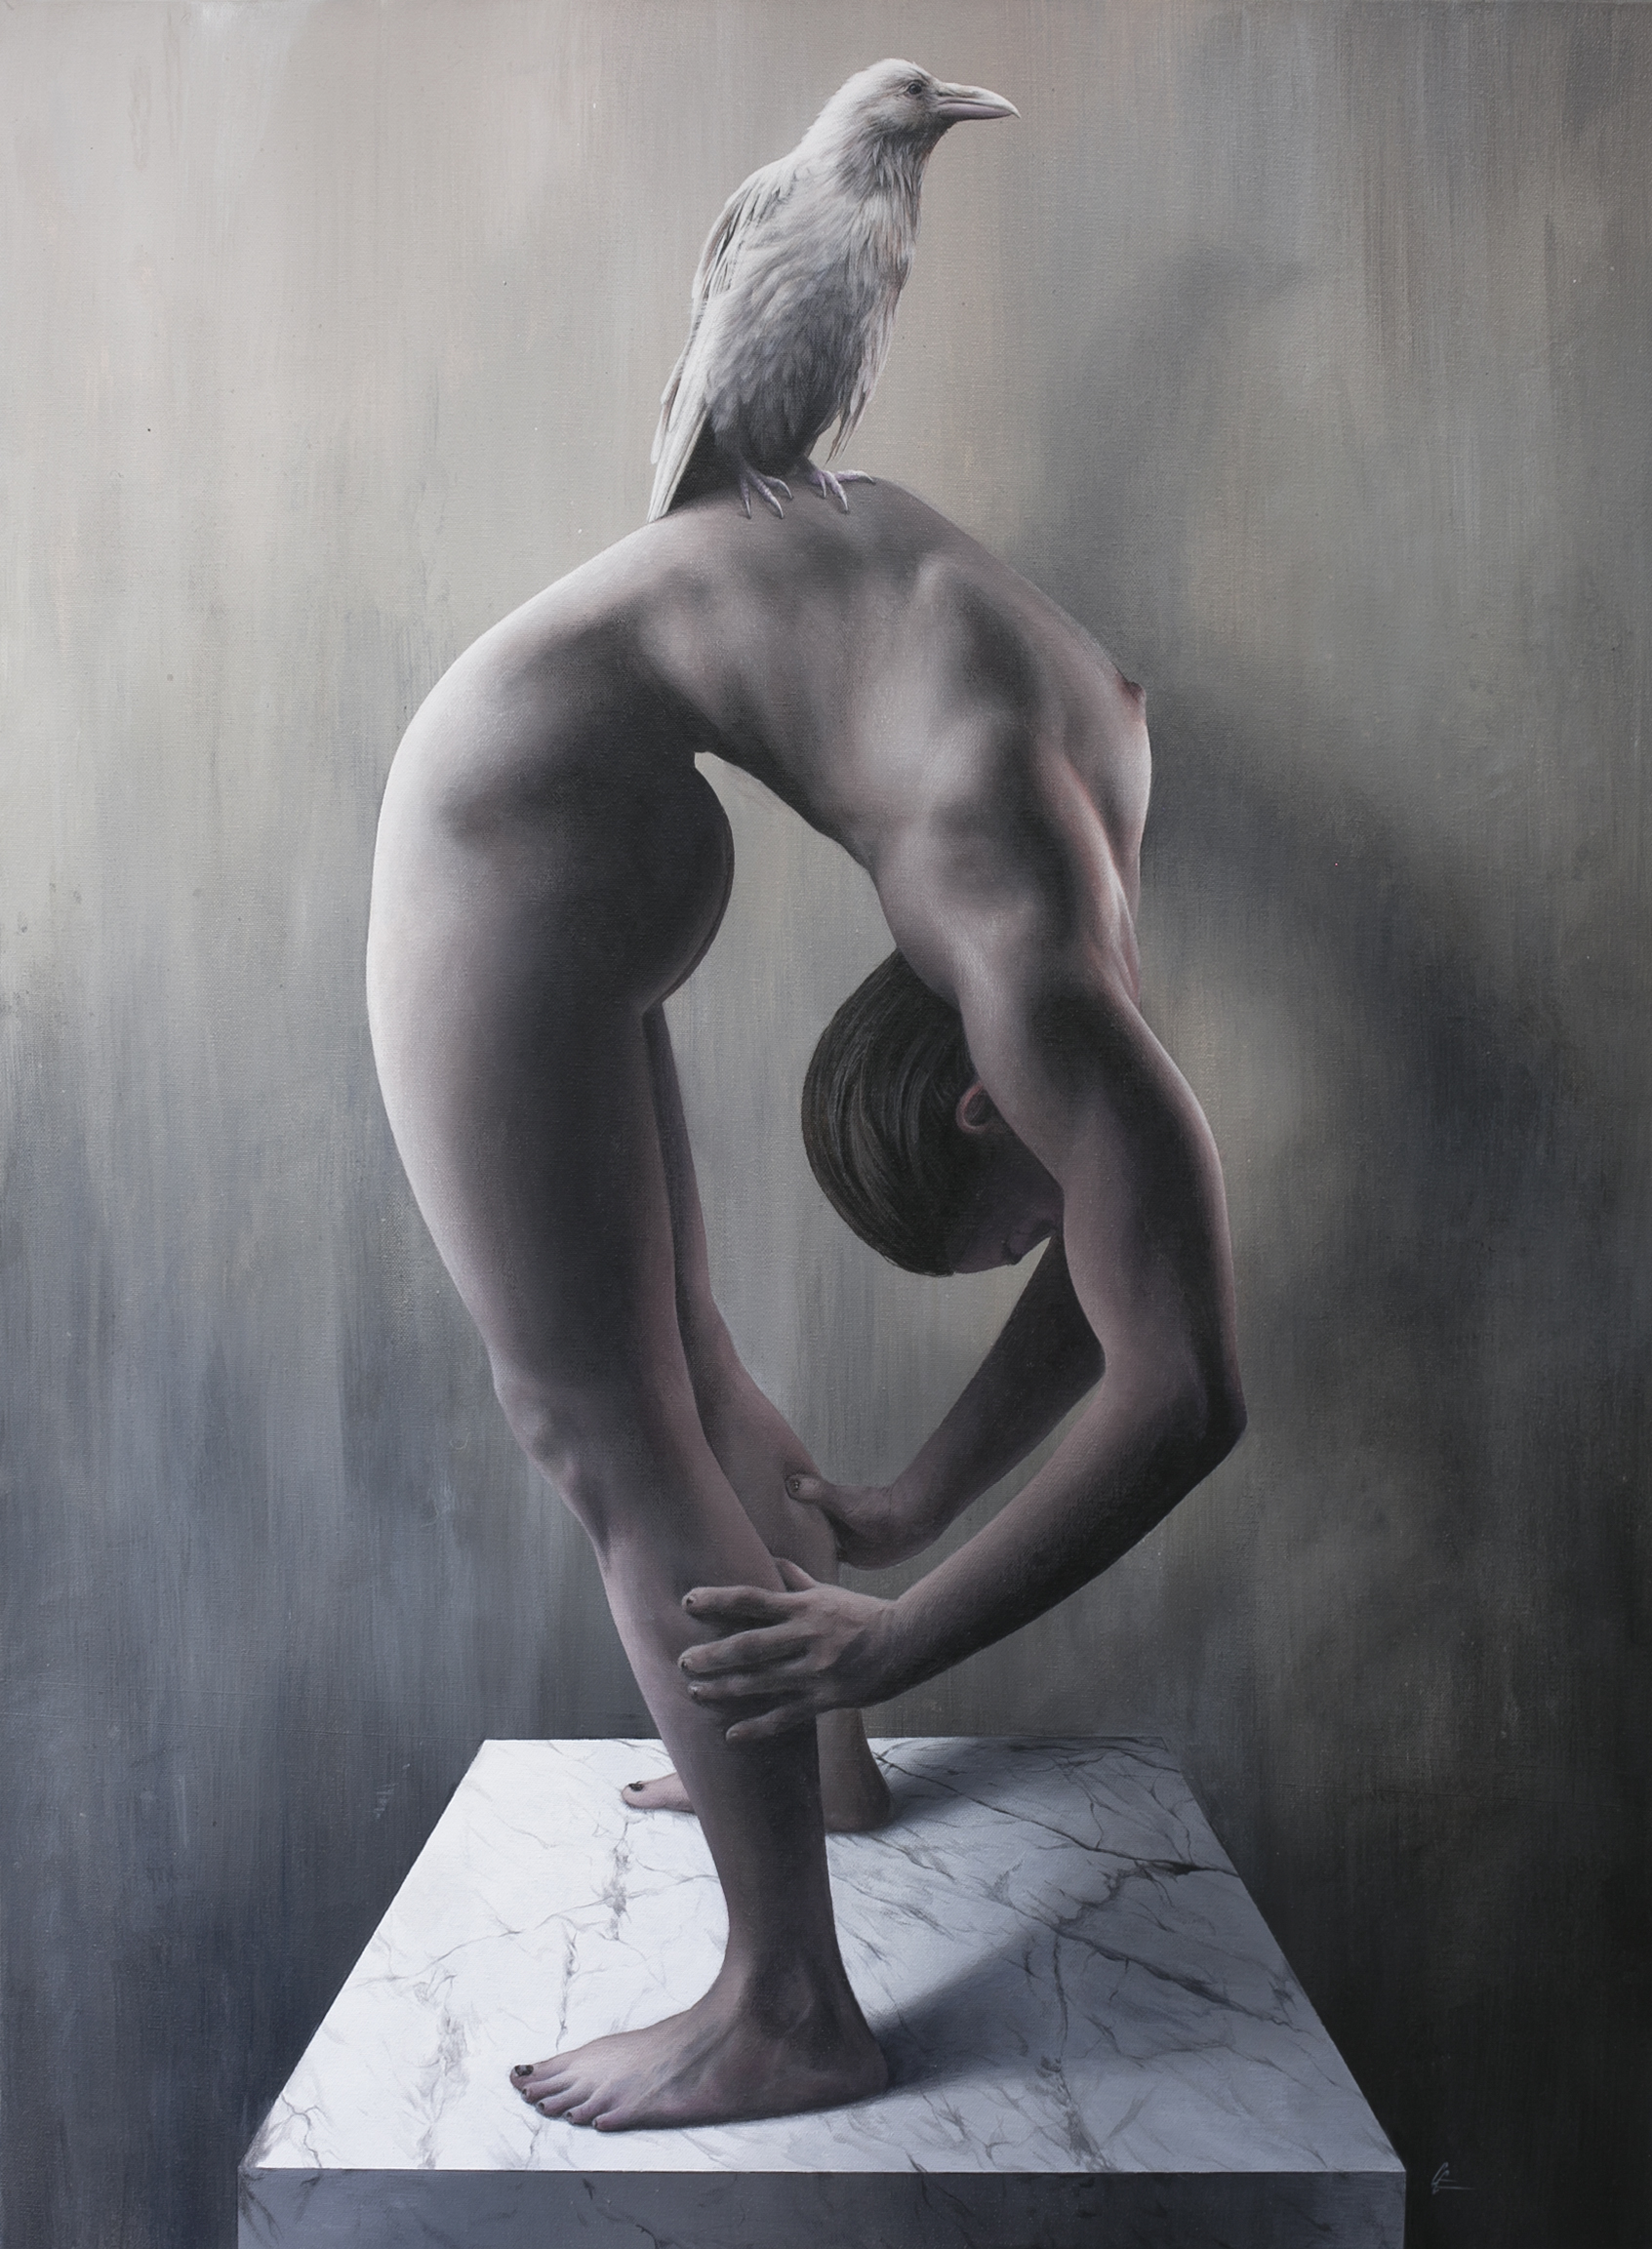 Bending Over Backwards Acrylic on Linen 30 x 40 inches